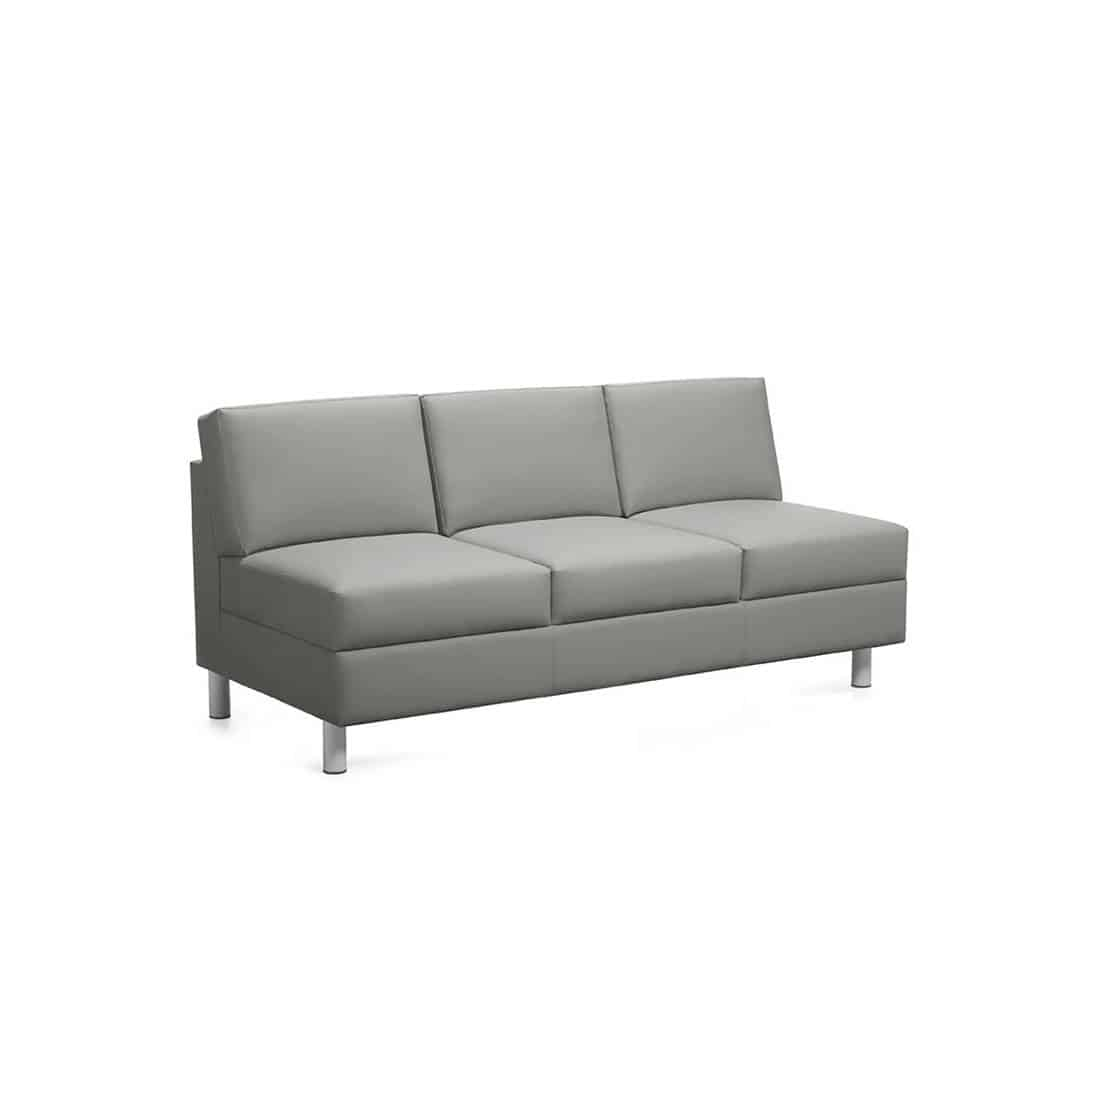 Global Citi 3 Seater- Reception Sofa